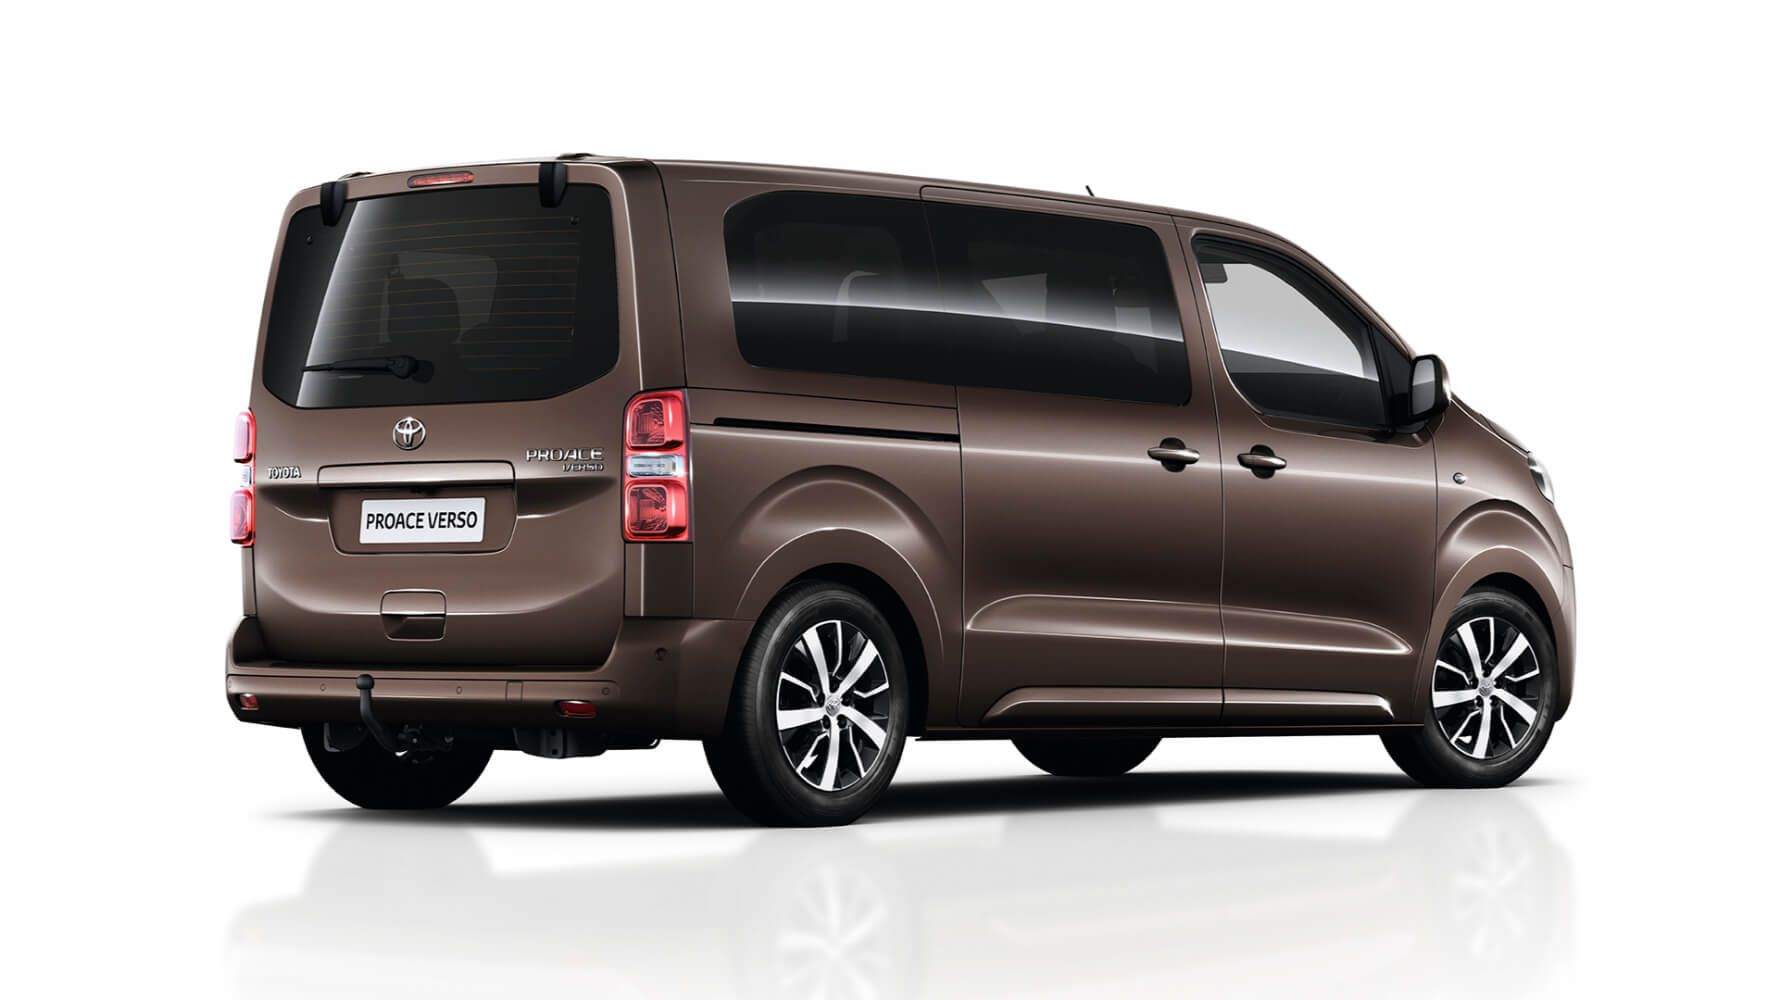 toyota_proace_verso_2019_gallery_019_full_tcm_3046_1703811